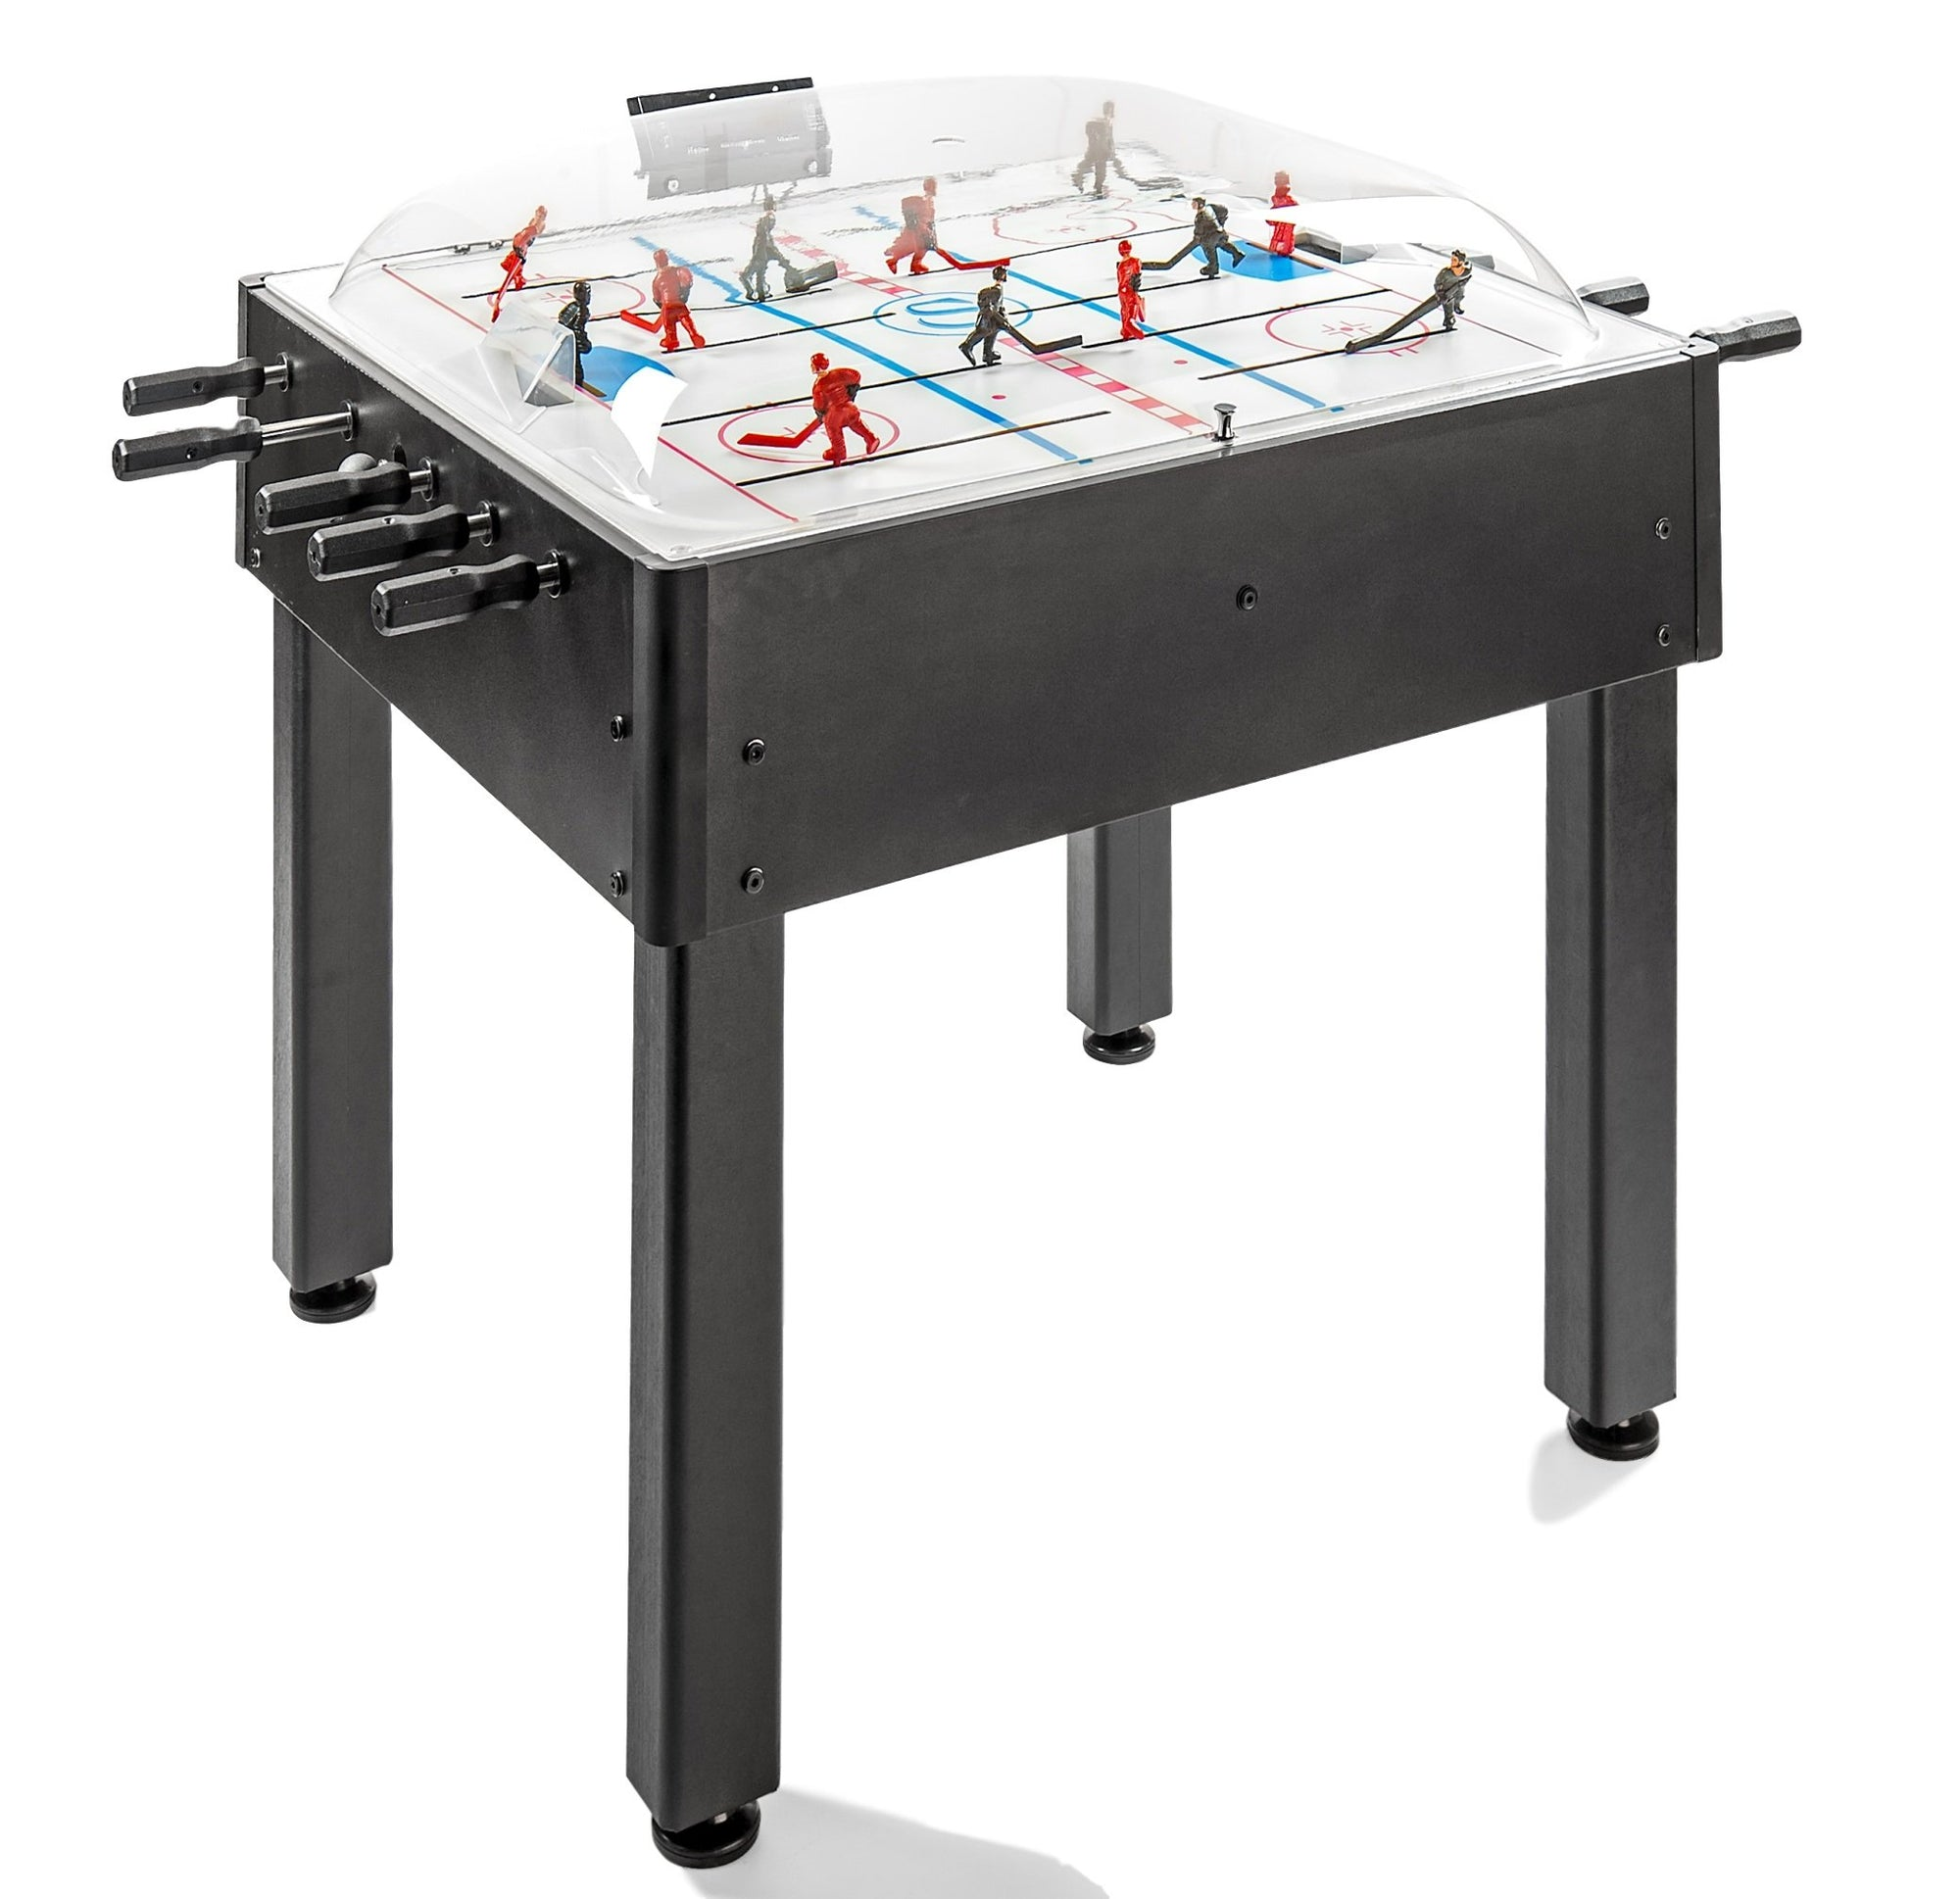 "Shelti Breakout Black Bubble Hockey Table Dome 52"" - Gaming Blaze"